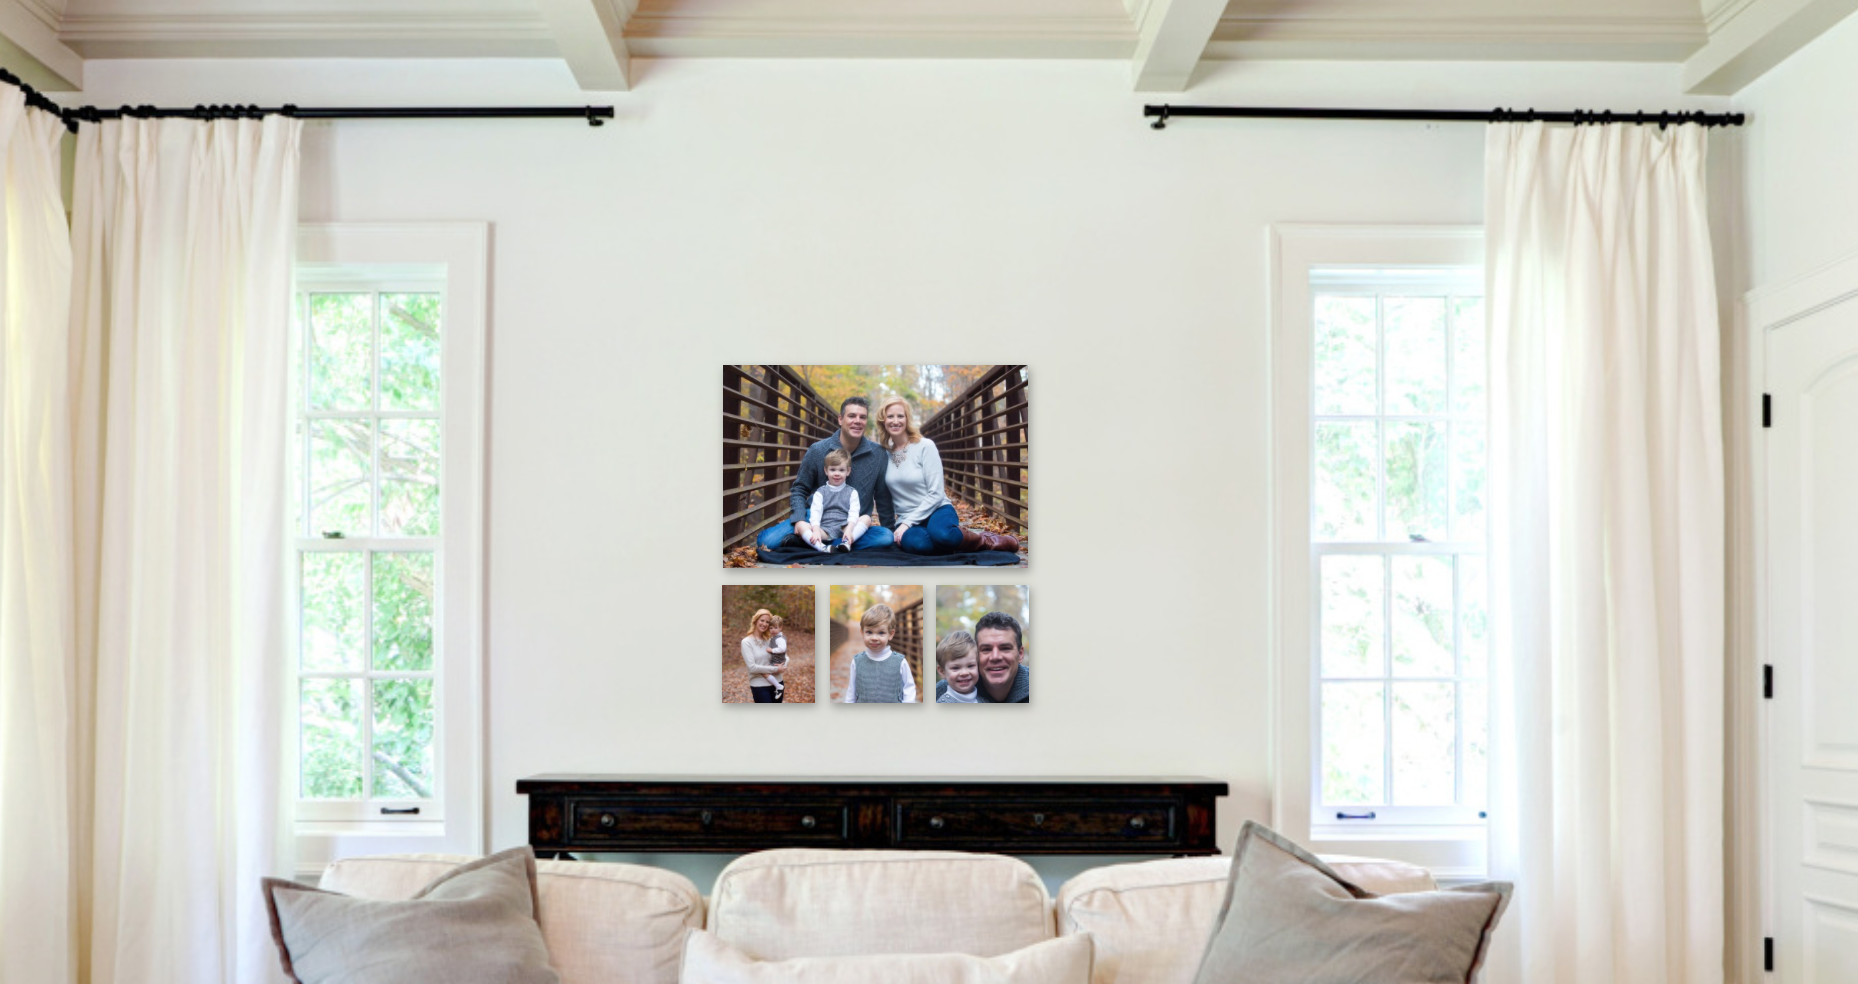 Fall family photos displayed nicely in living room.